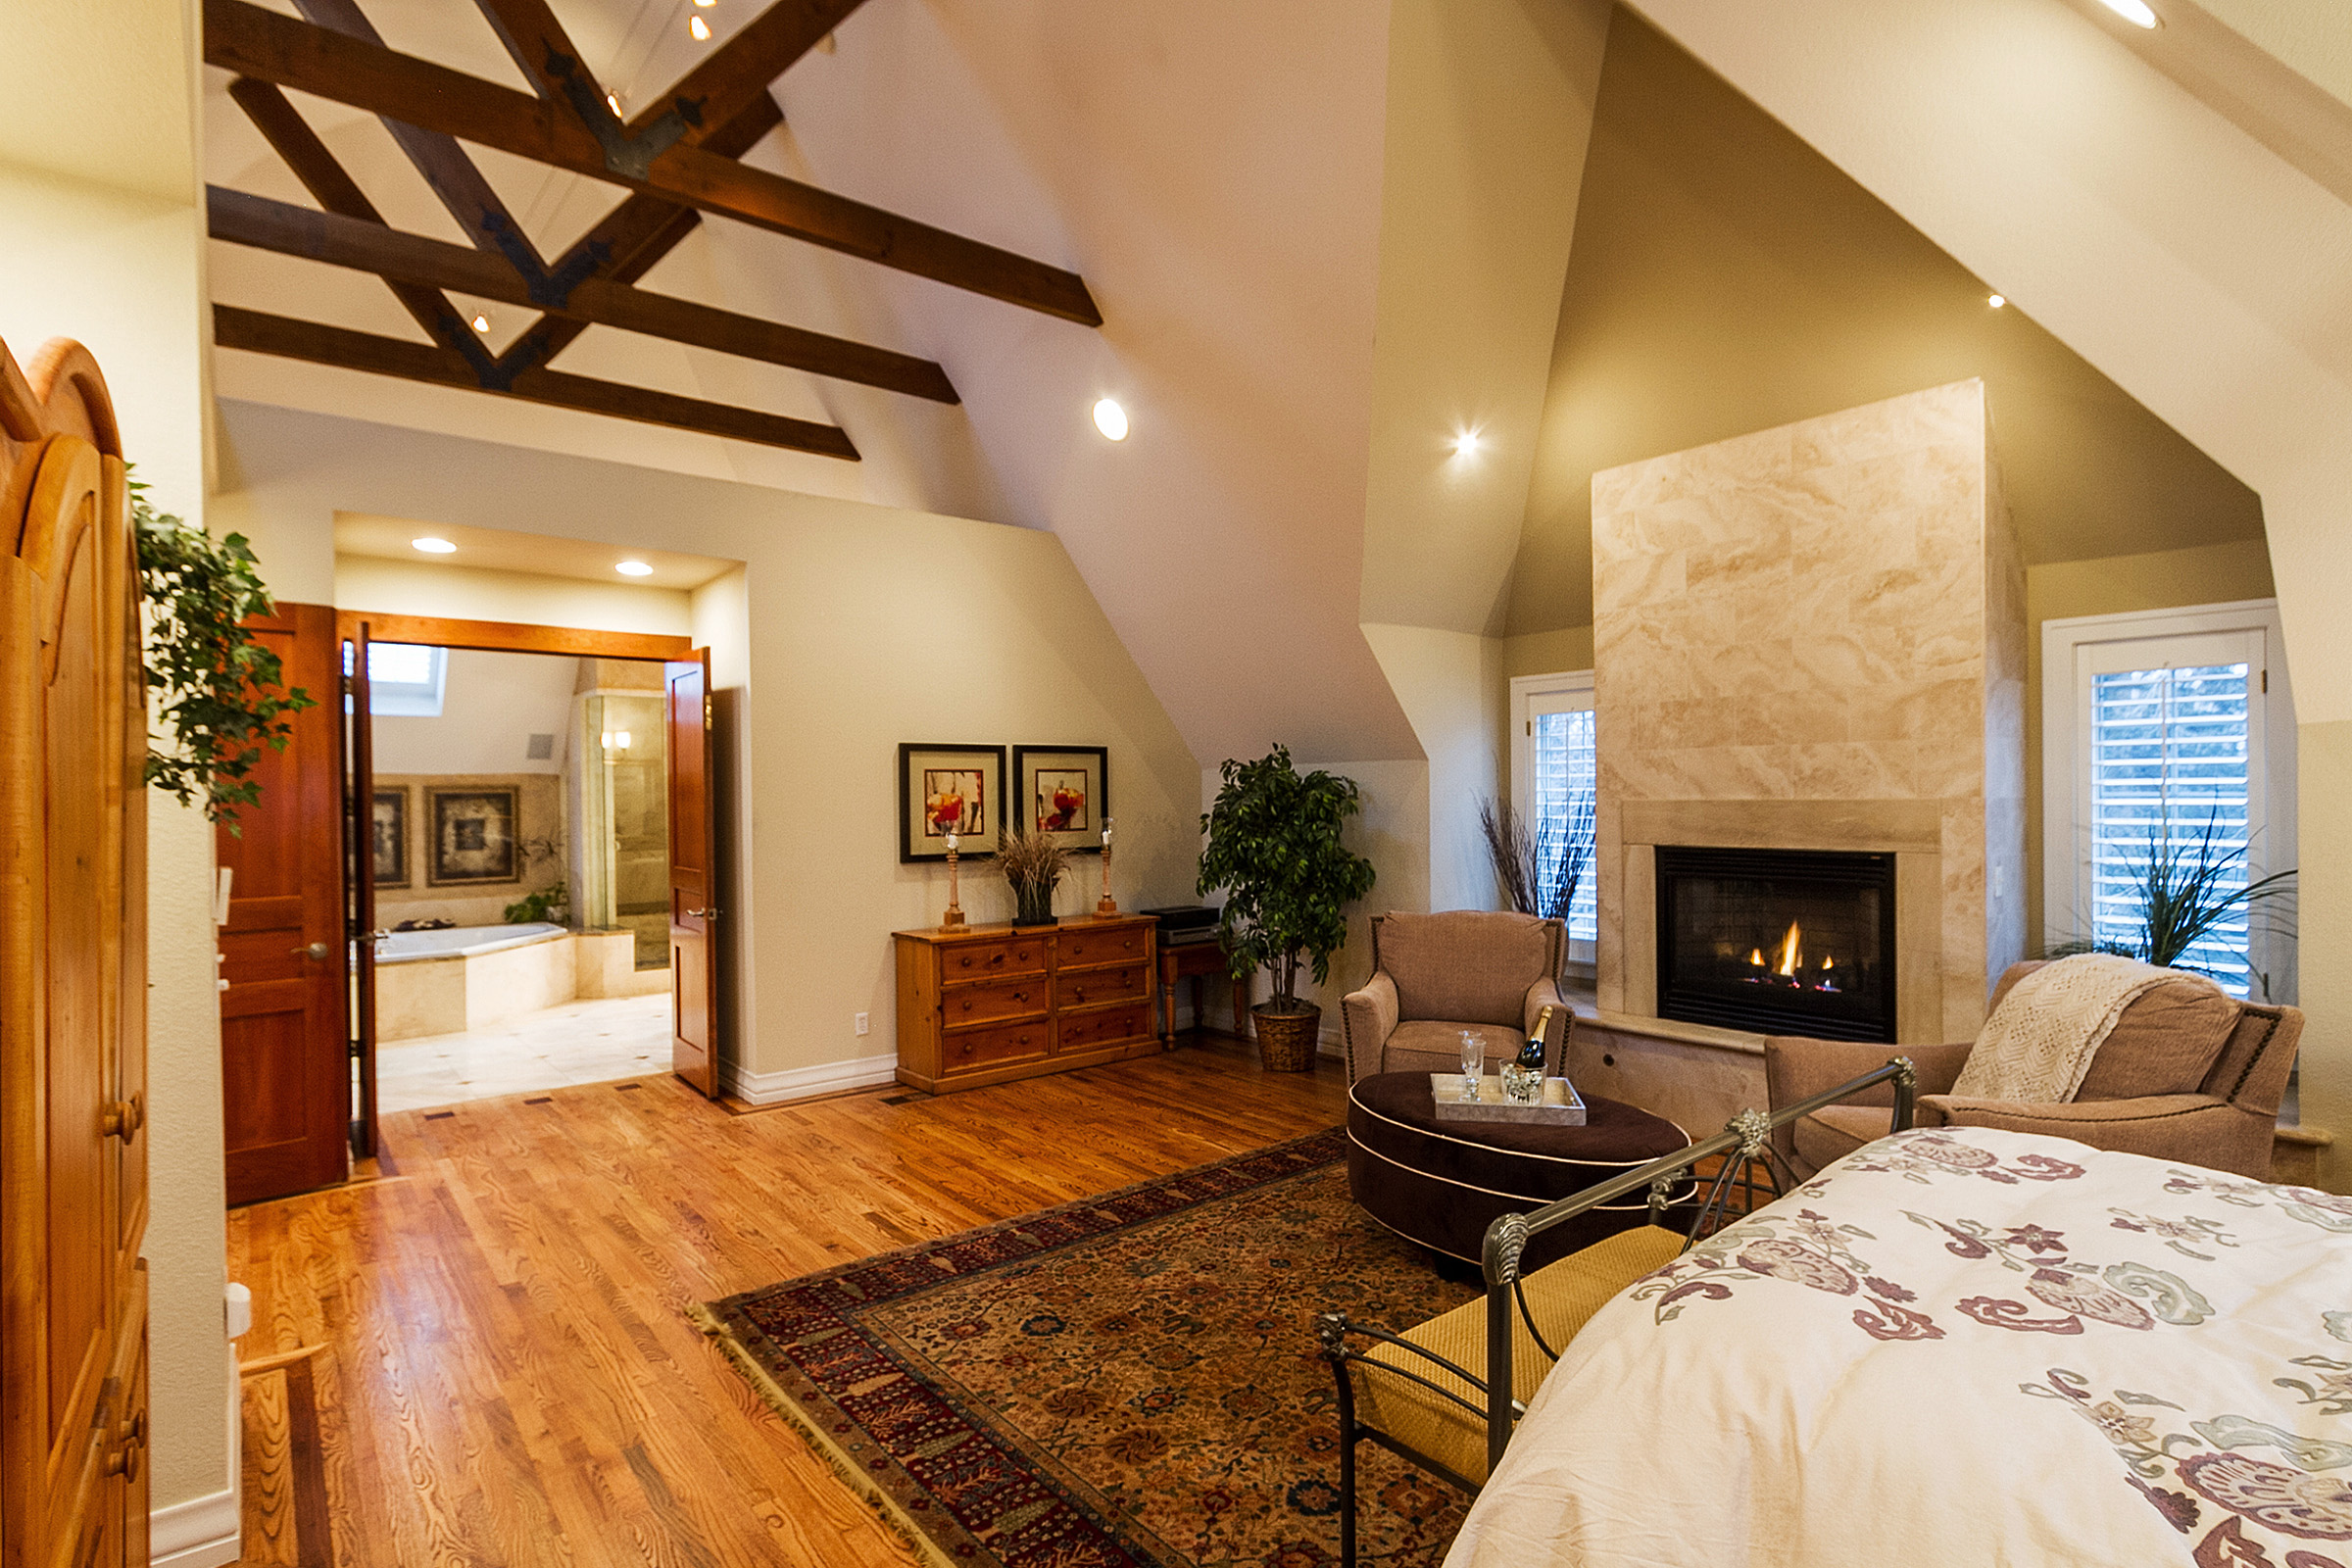 1183152_Master-Suite-and-Bath-Have-Exposed-Trusses_high.jpg